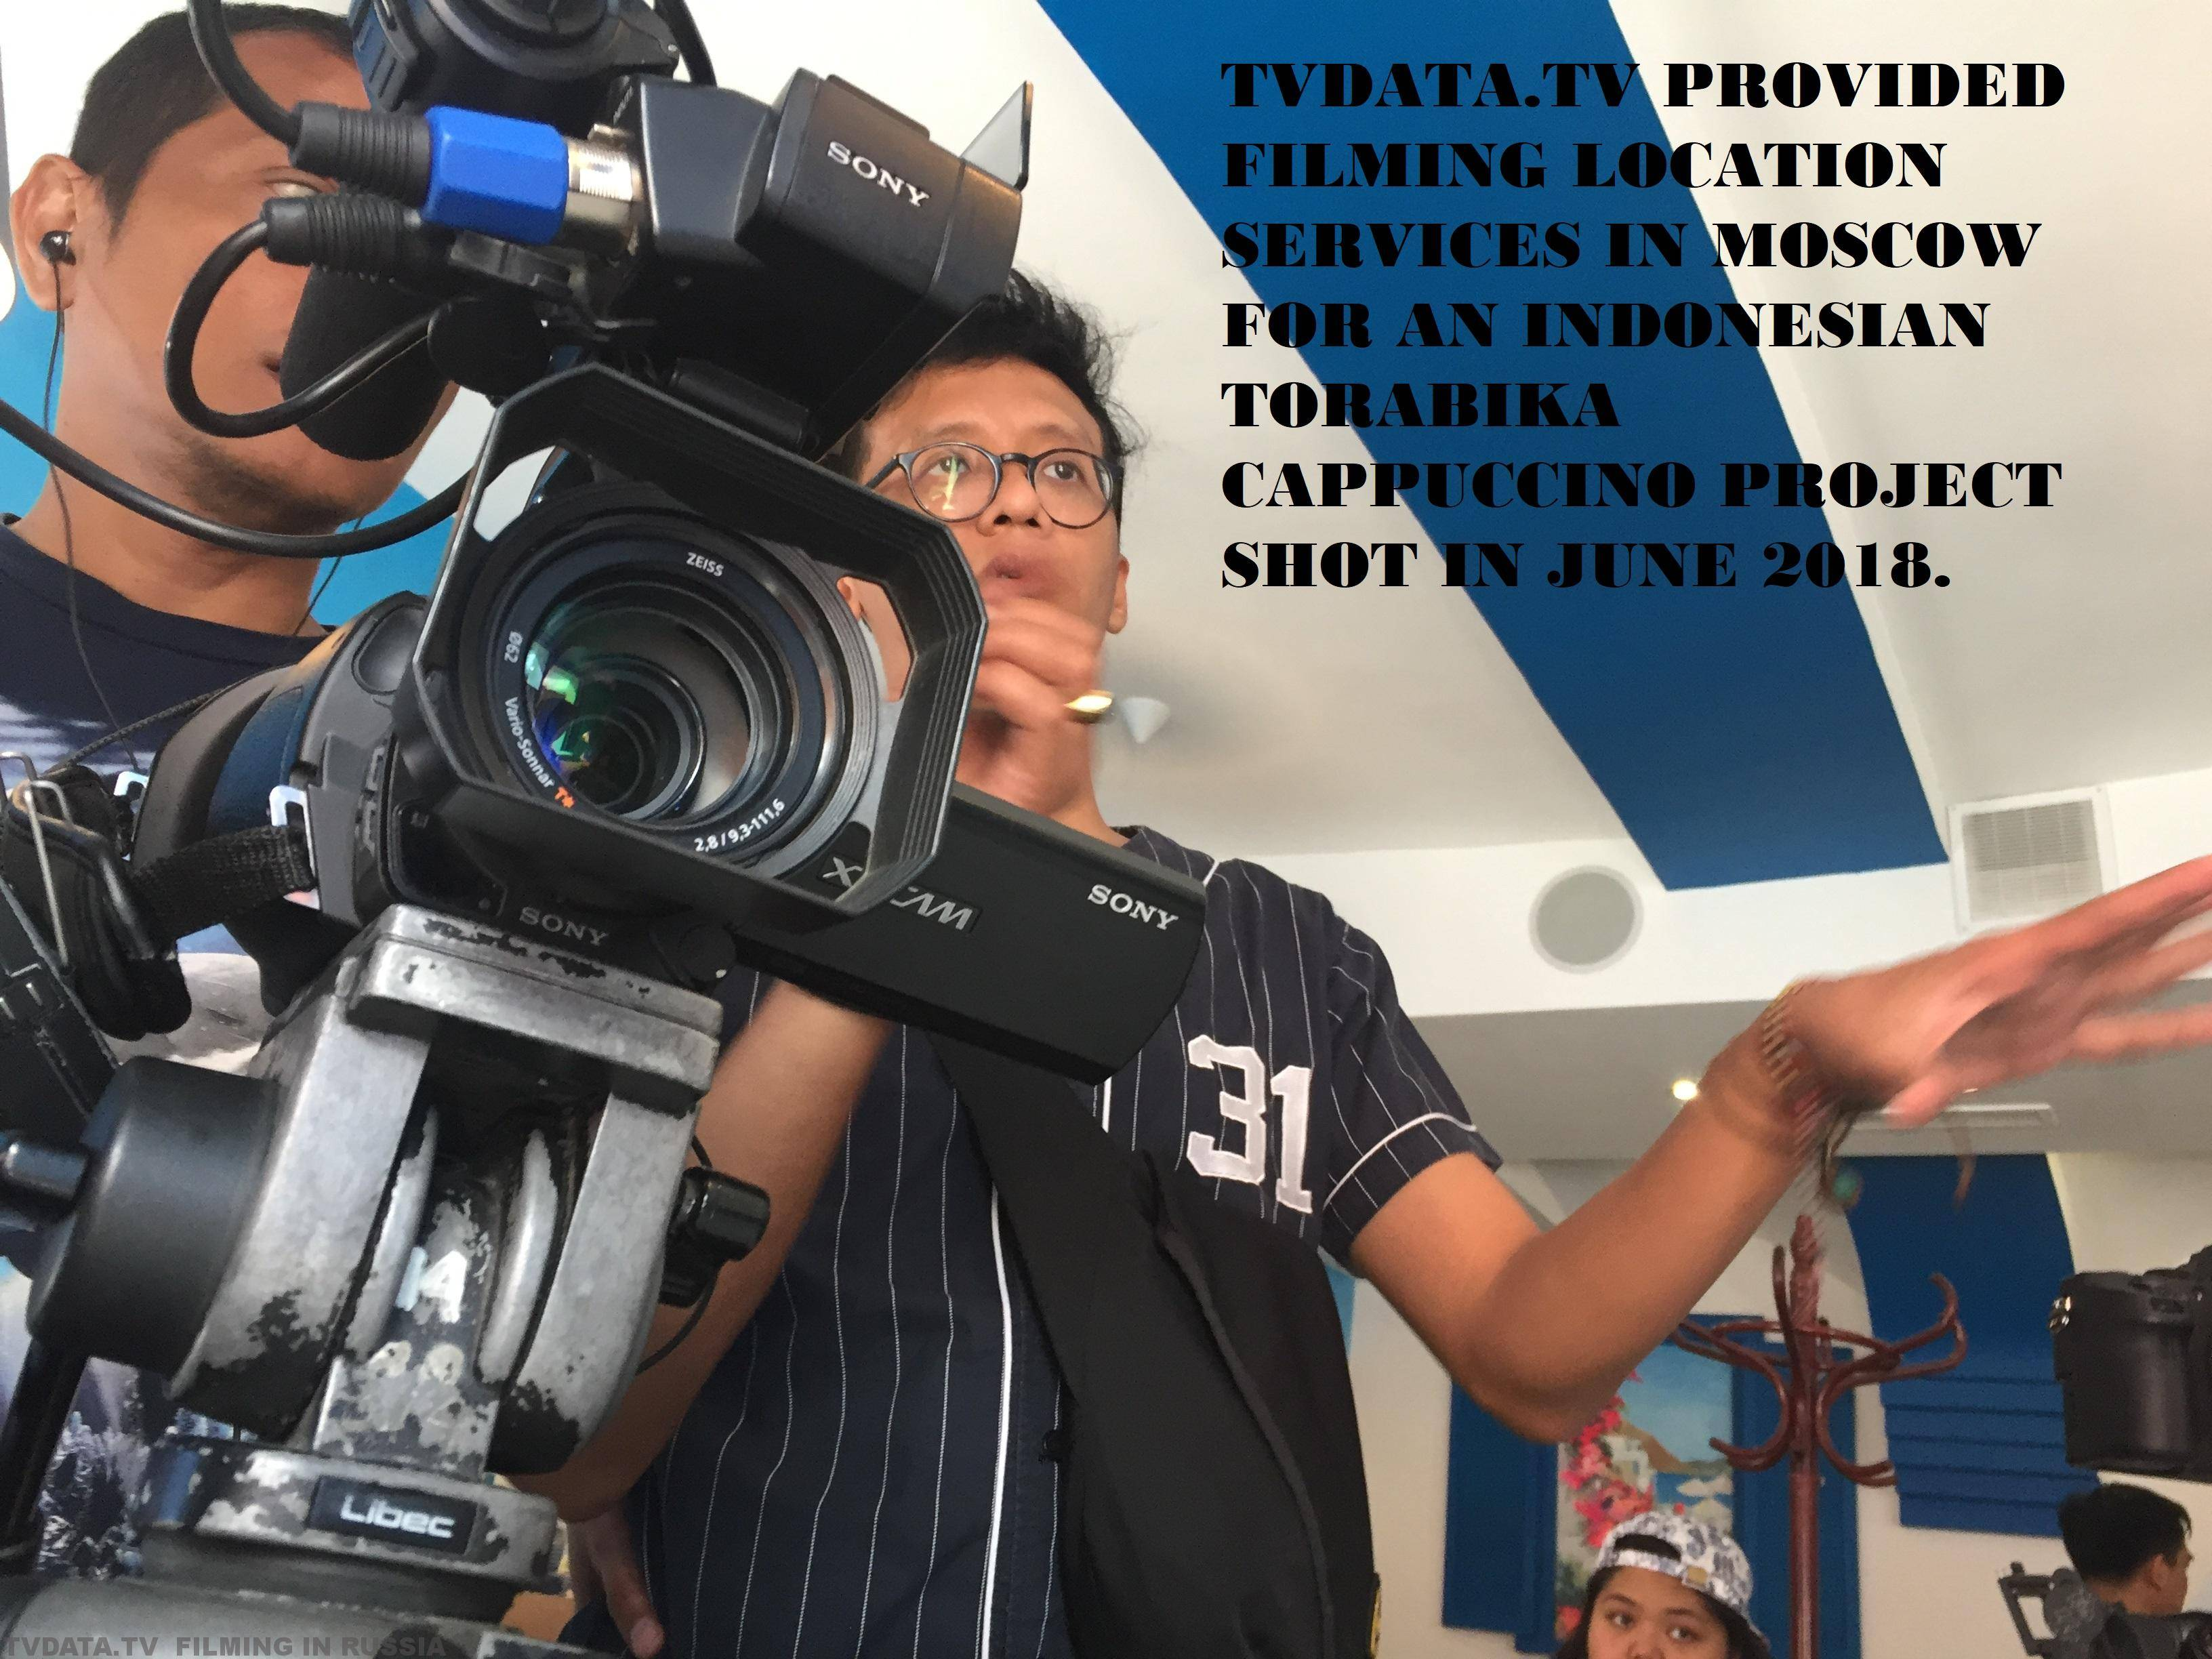 TVDATA.TV PROVIDED FILMING LOCATION SERVICES IN MOSCOW FOR AN INDONESIAN TORABIKA CAPPUCCINO PROJECT SHOT IN JUNE 2018.